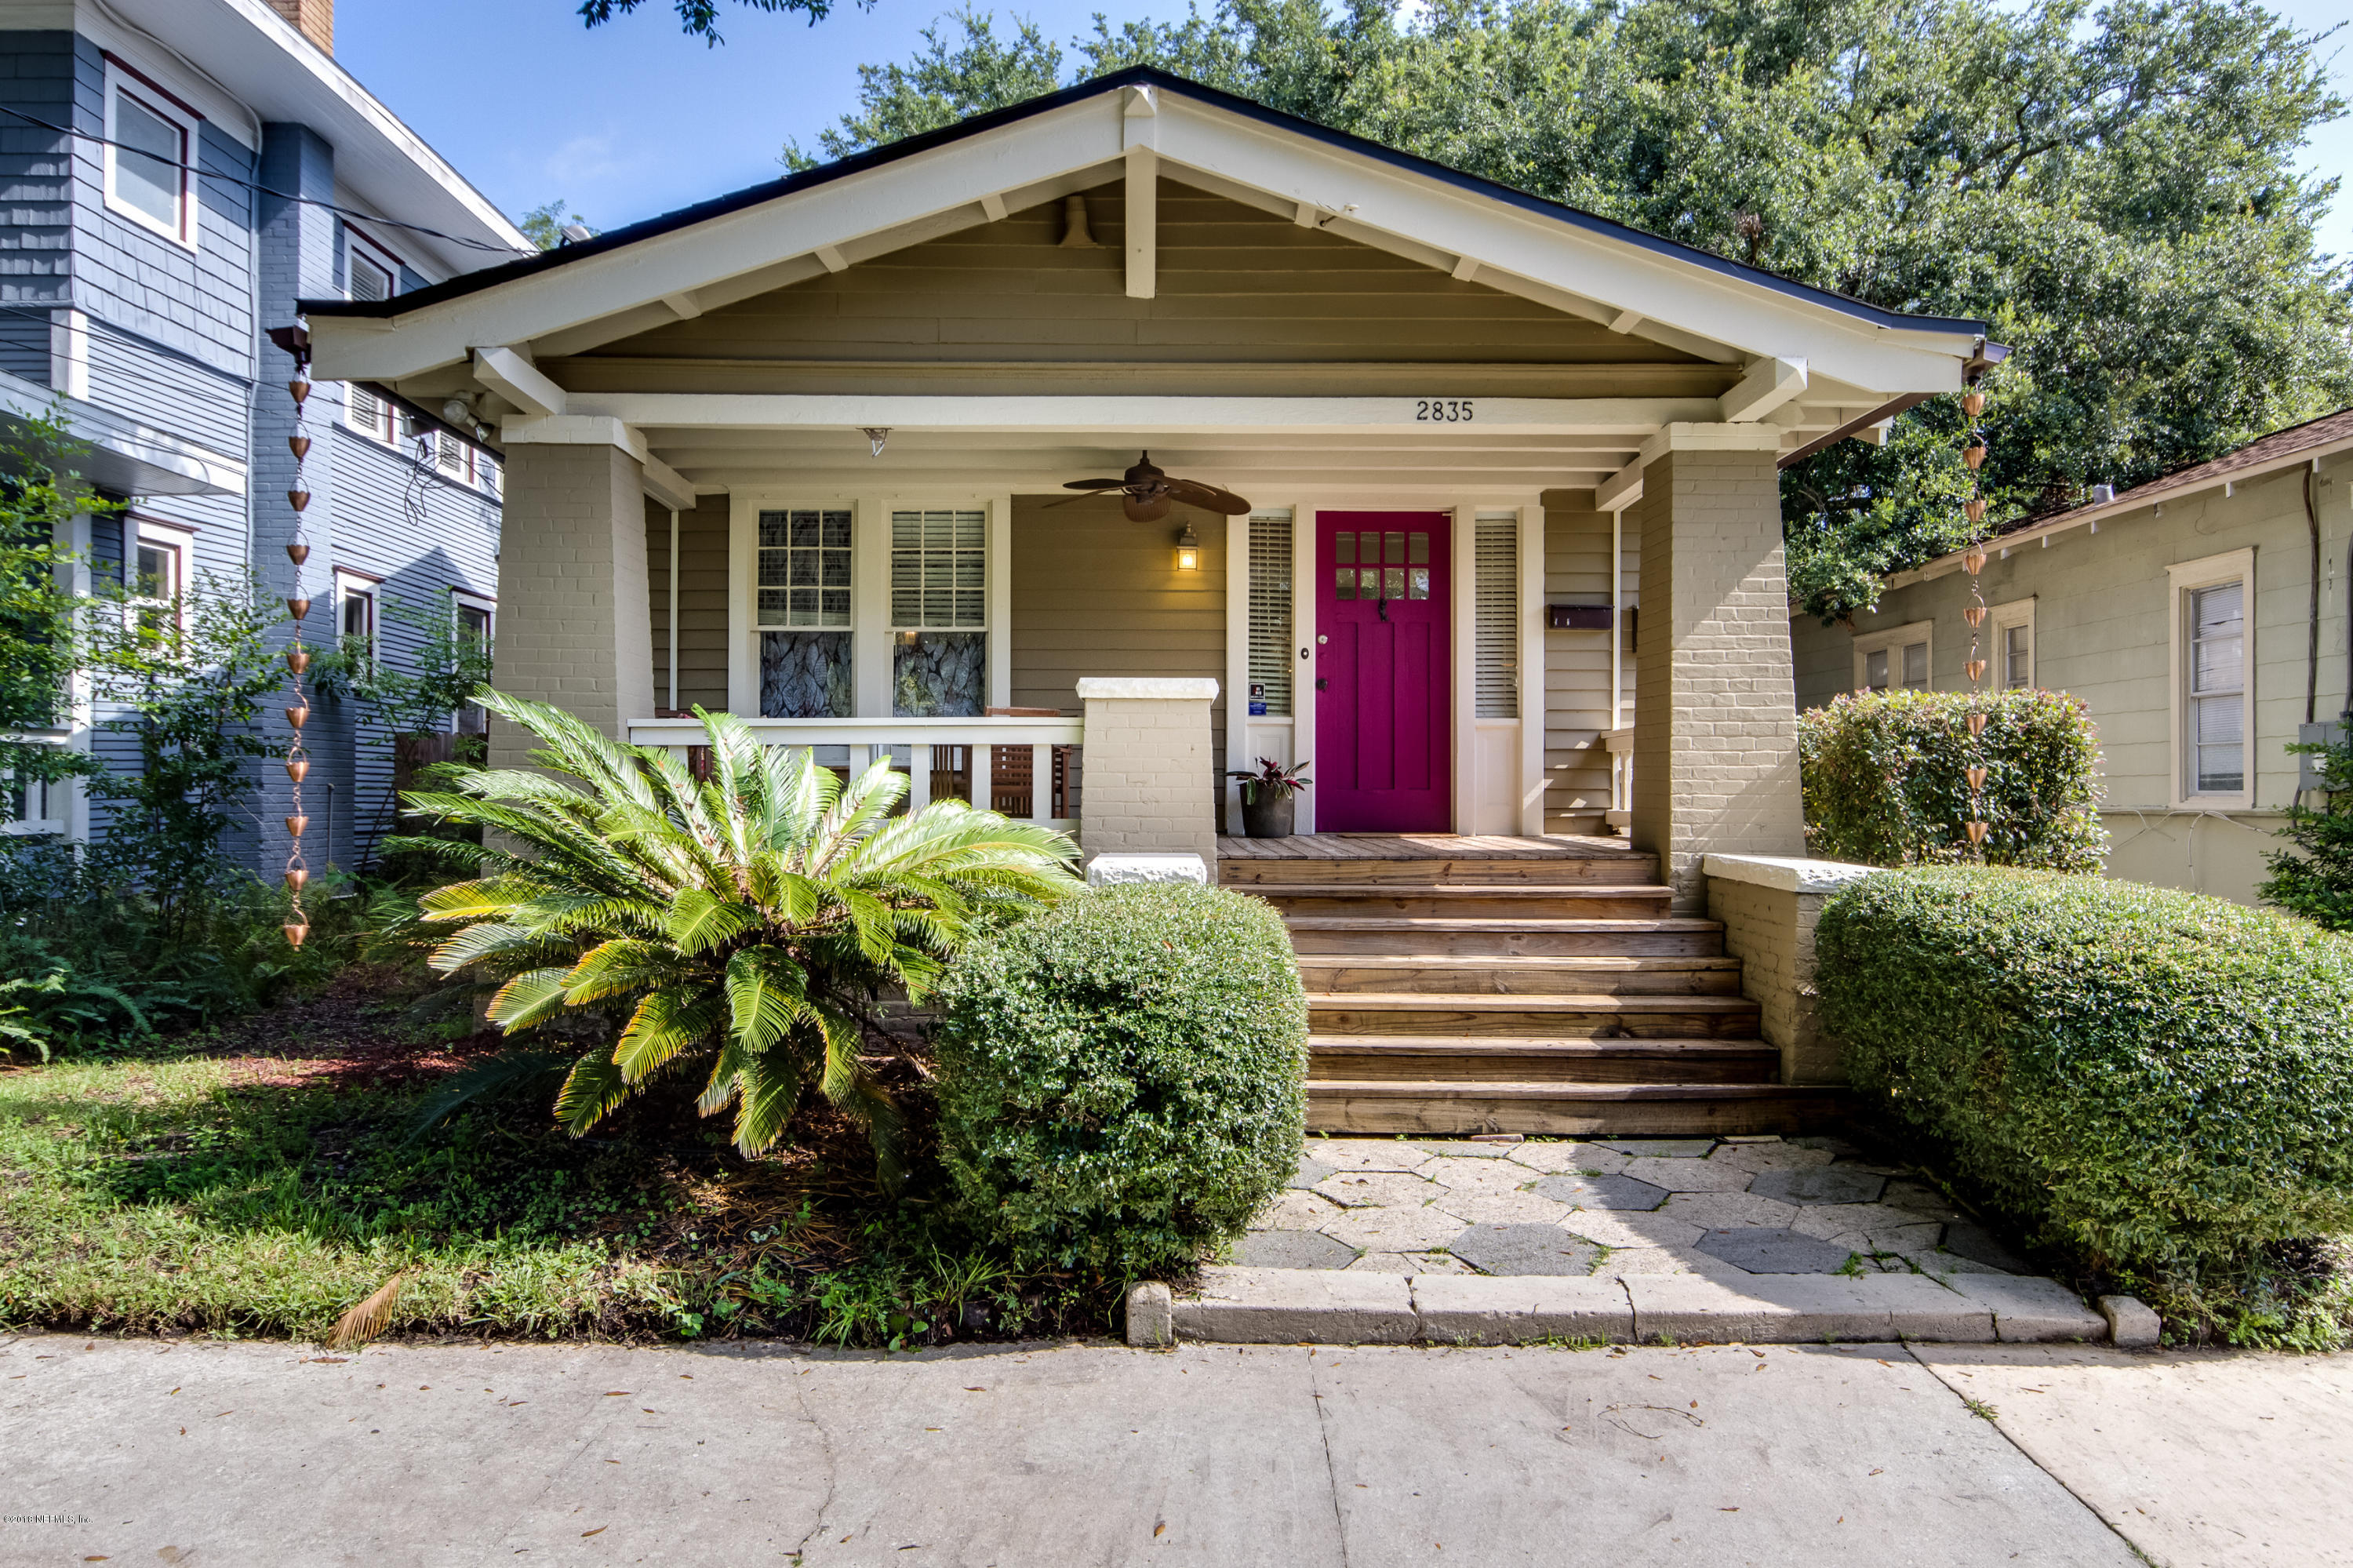 2835 POST, JACKSONVILLE, FLORIDA 32205, 4 Bedrooms Bedrooms, ,3 BathroomsBathrooms,Residential - single family,For sale,POST,950150